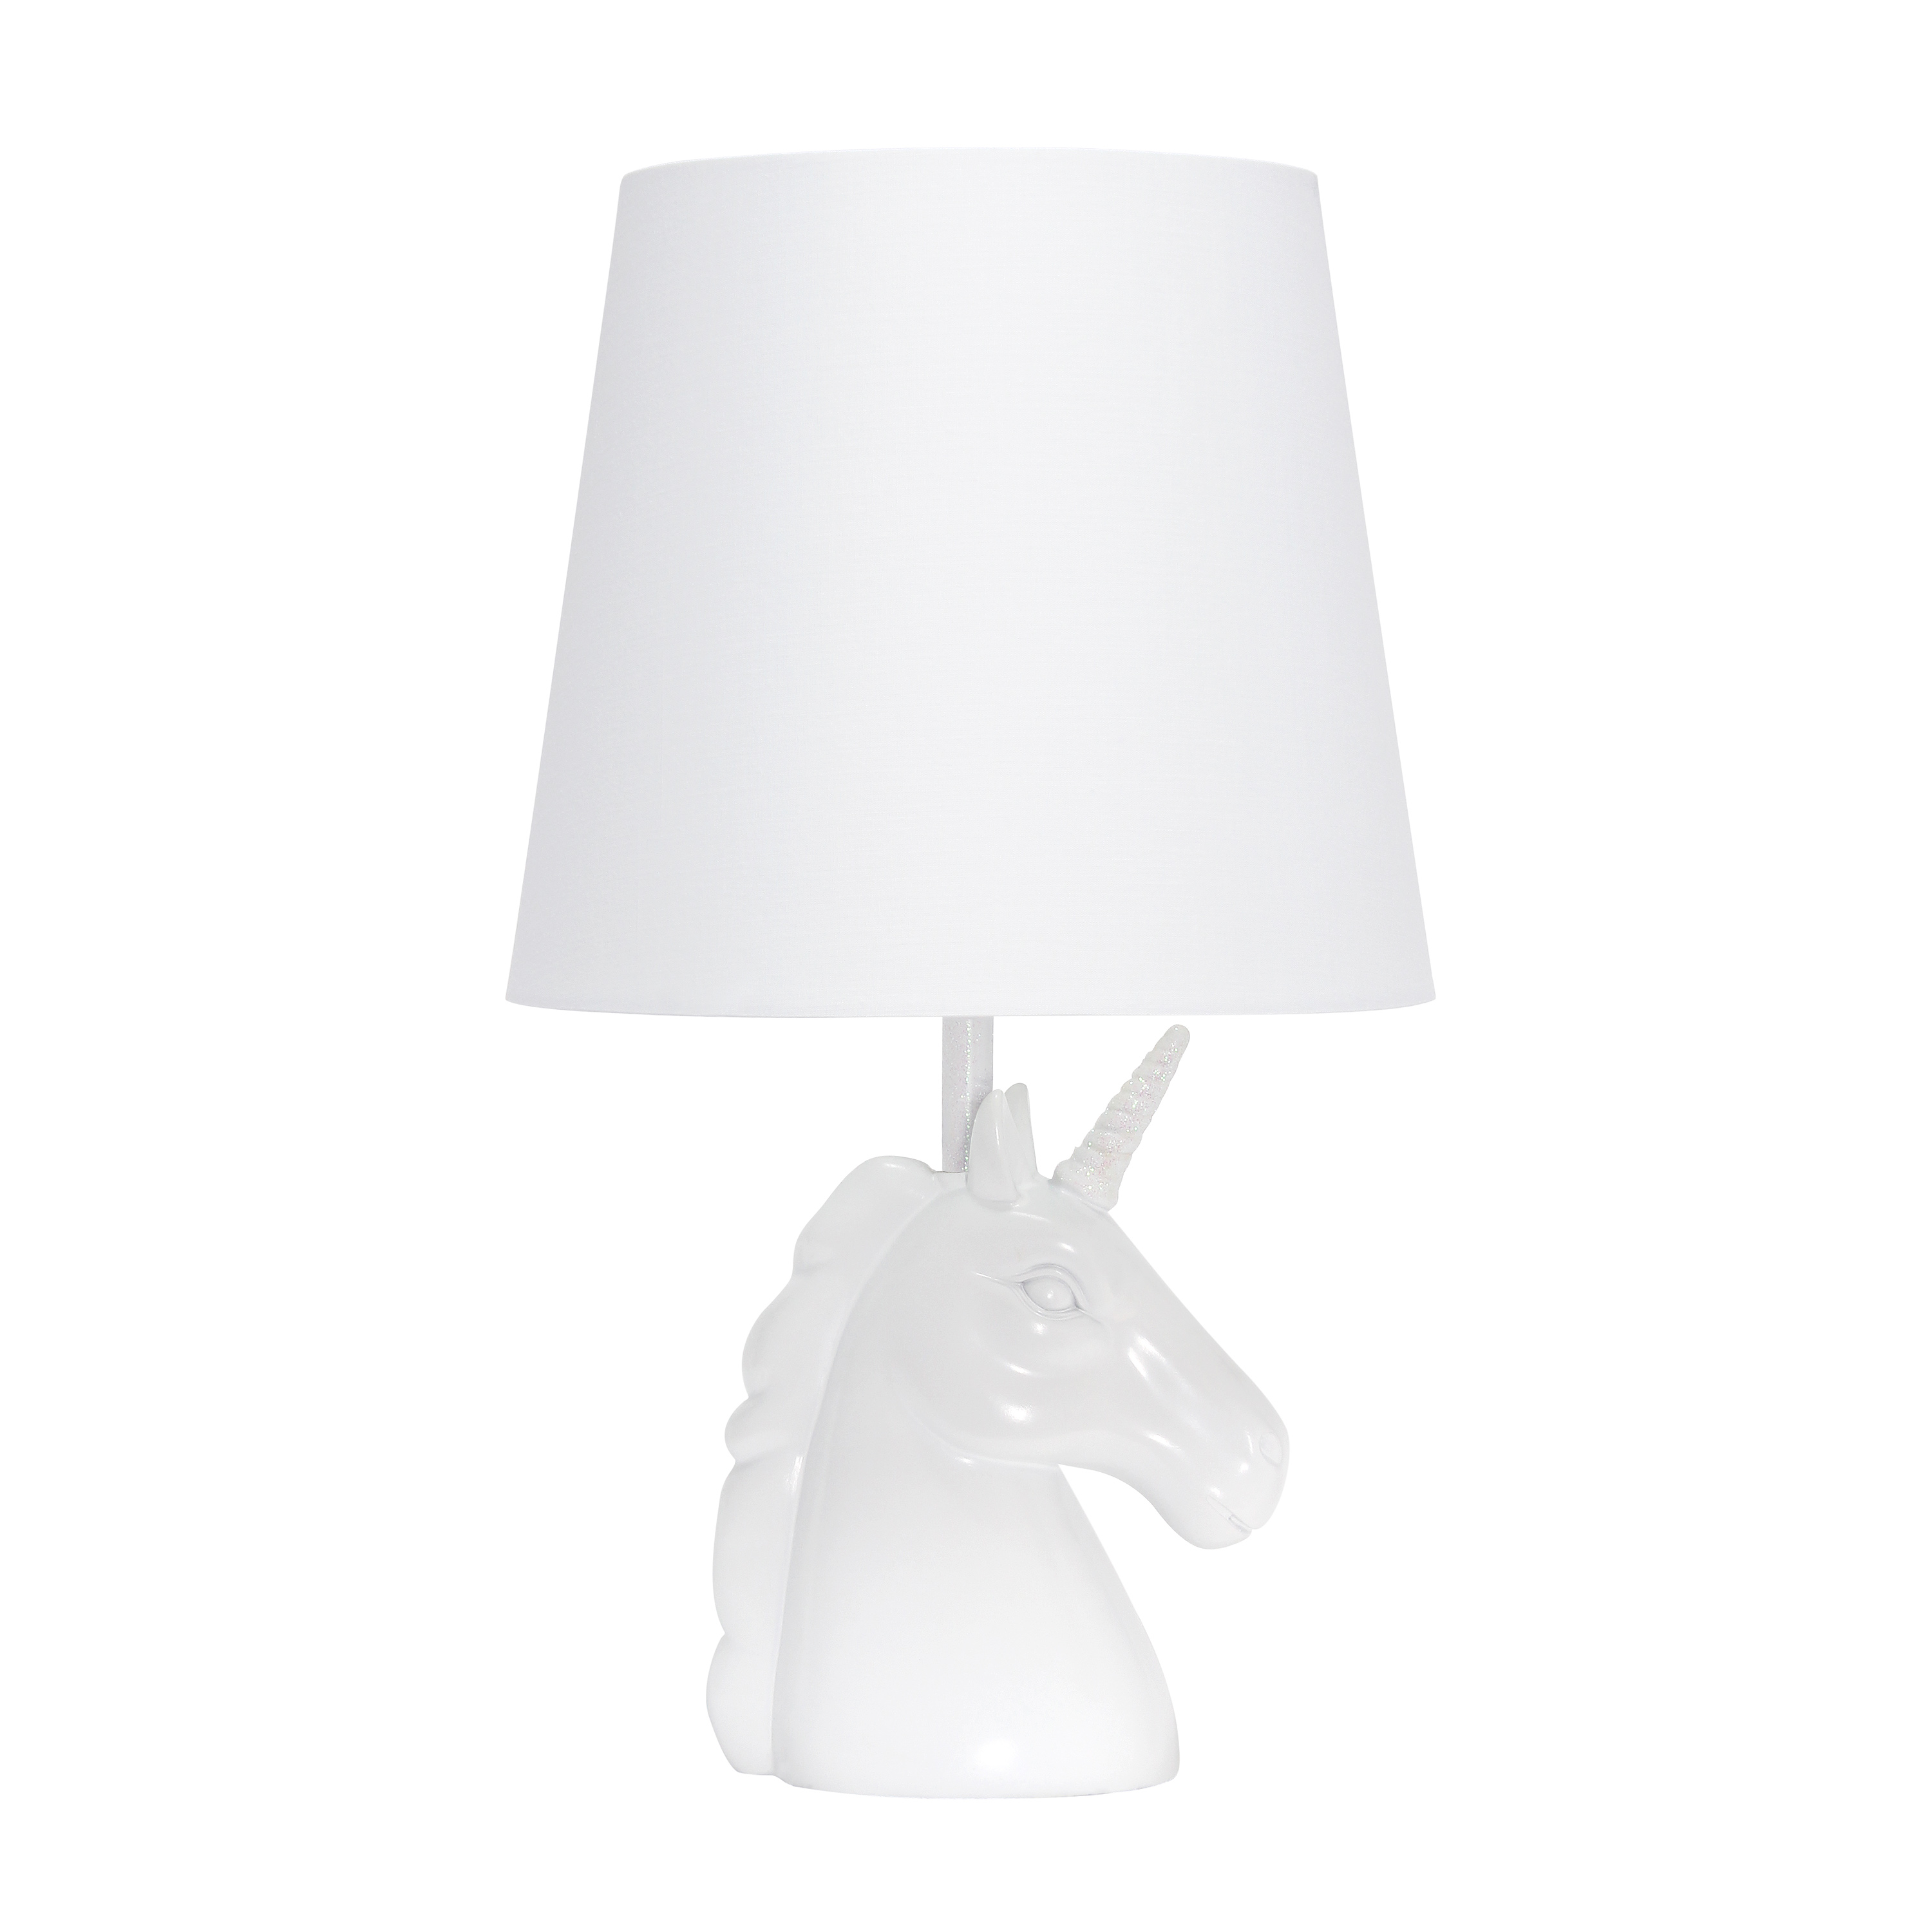 Simple Designs Sparkling Iridescent and White Unicorn Table Lamp